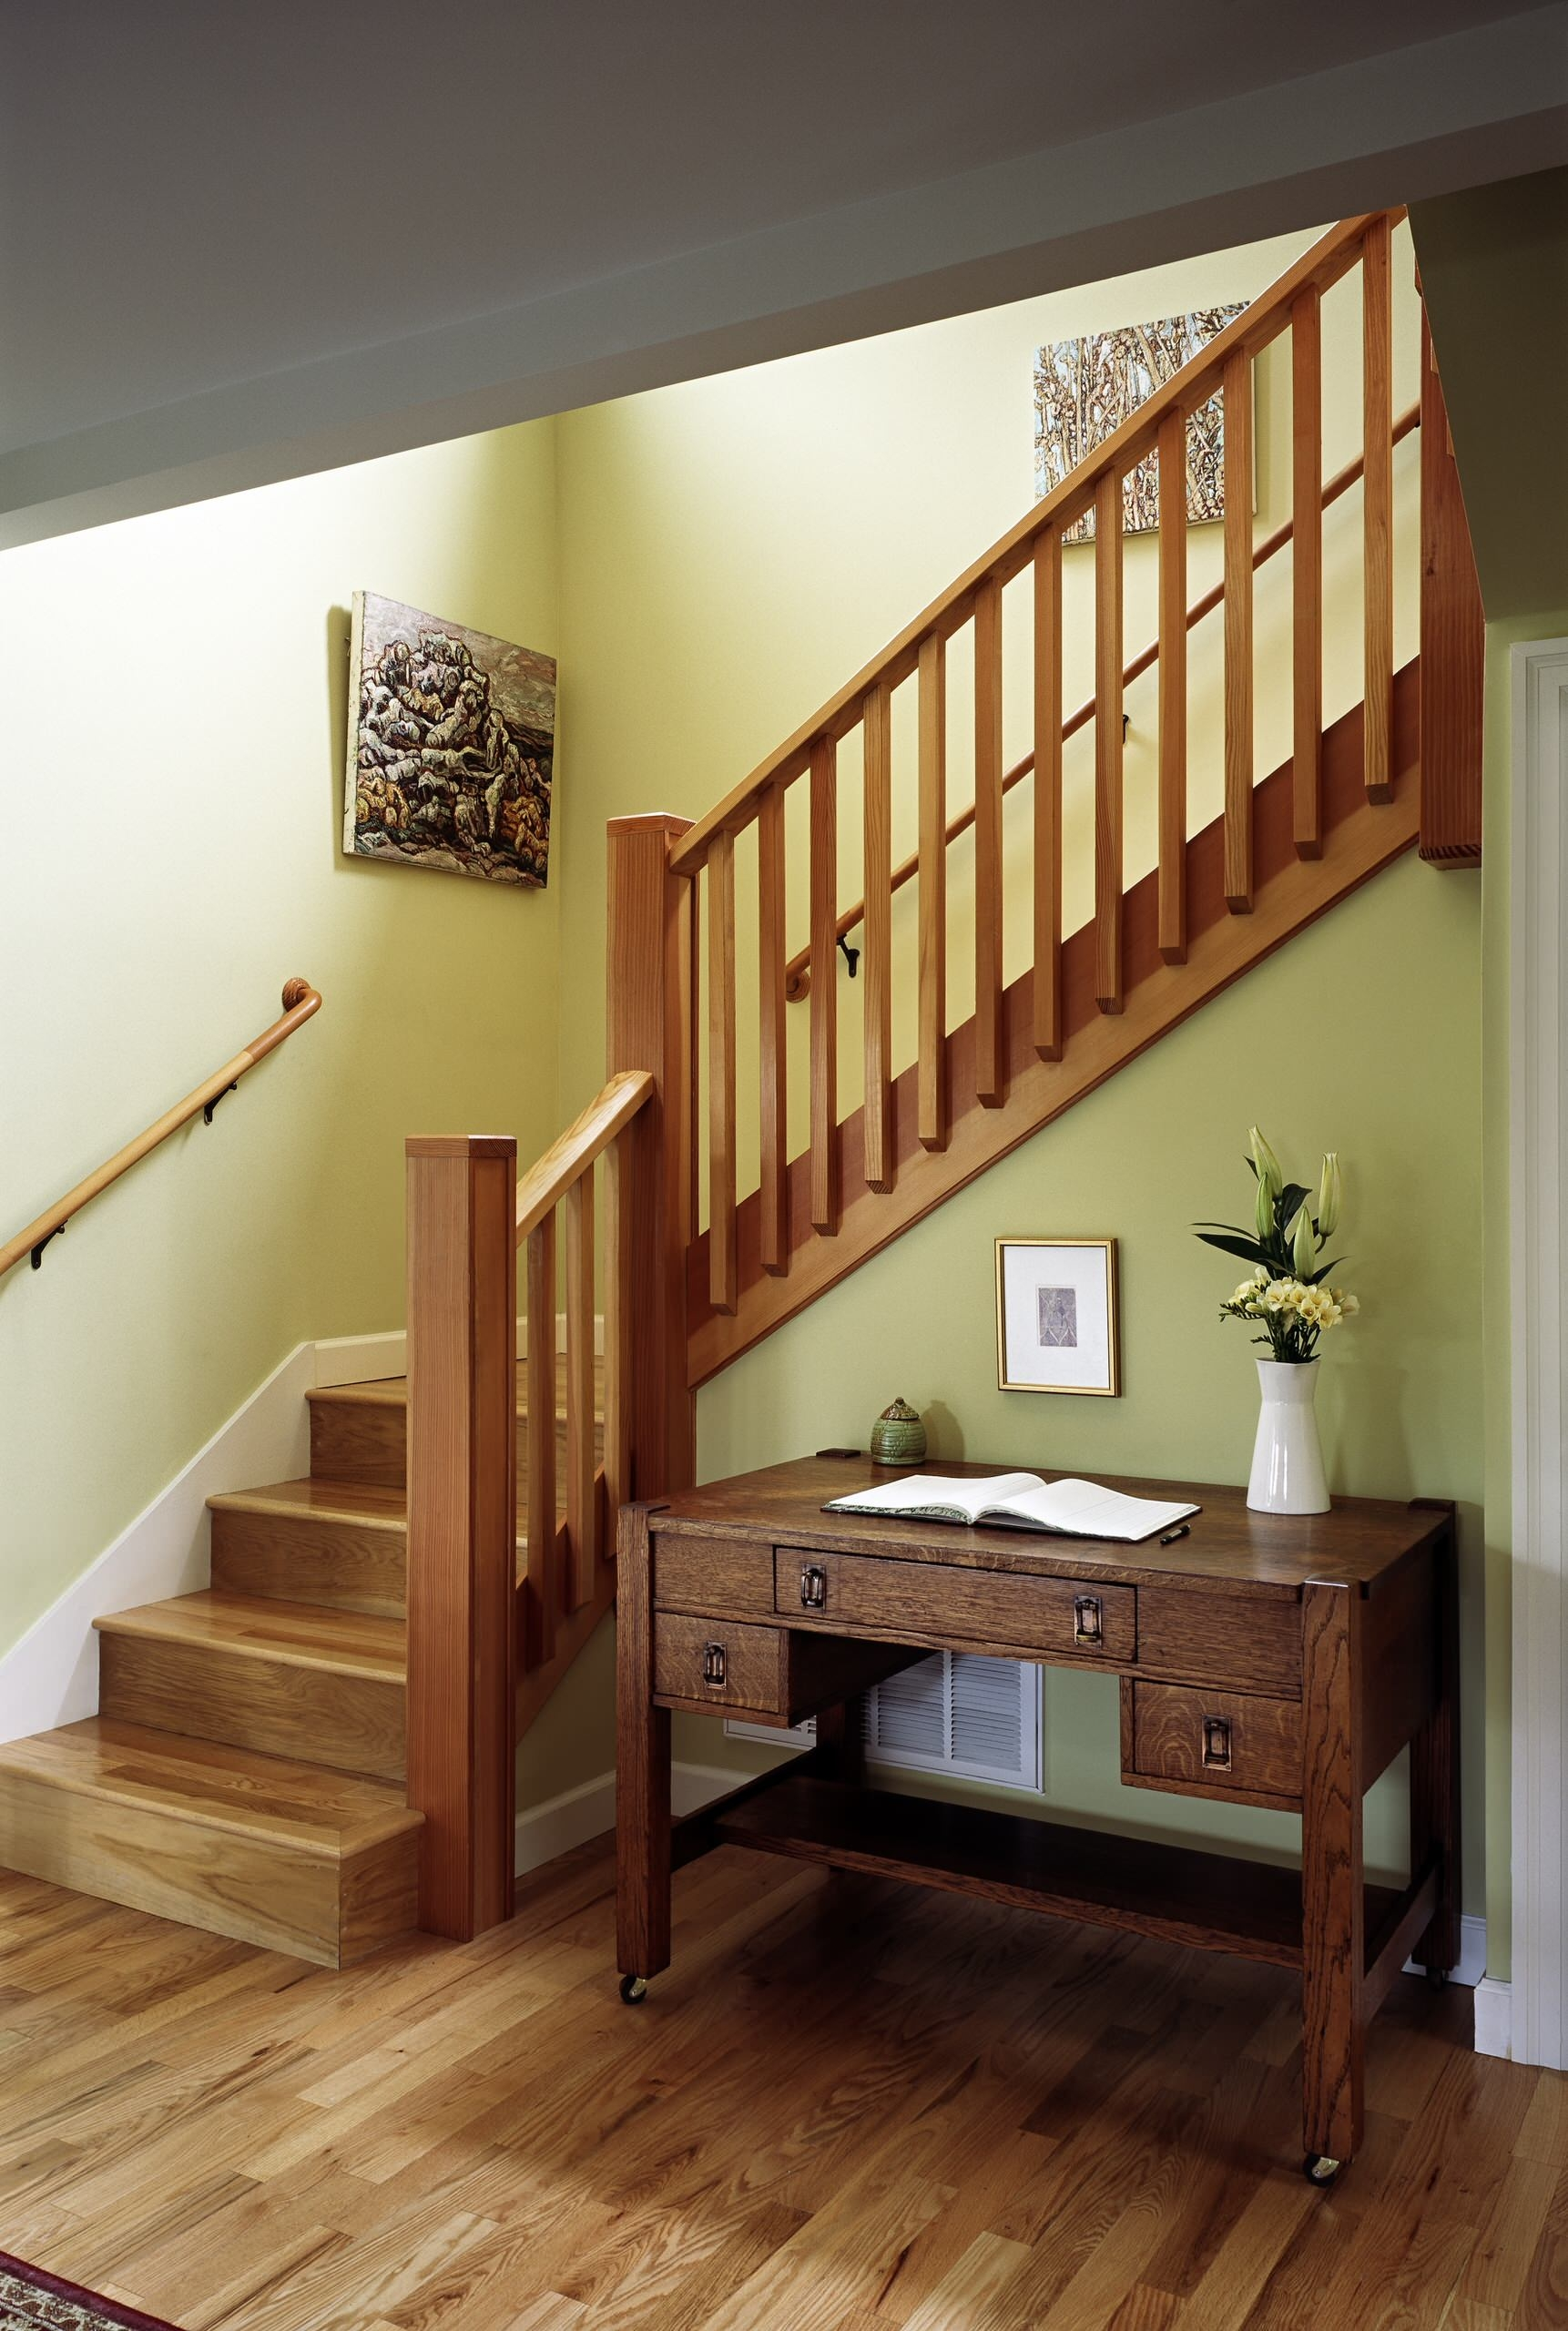 Two Story House Staircase Ideas Photos Houzz | Stair Room Front Design | 3Rd Floor | Residential | 100 Sq Meter House | Hall | Small Space